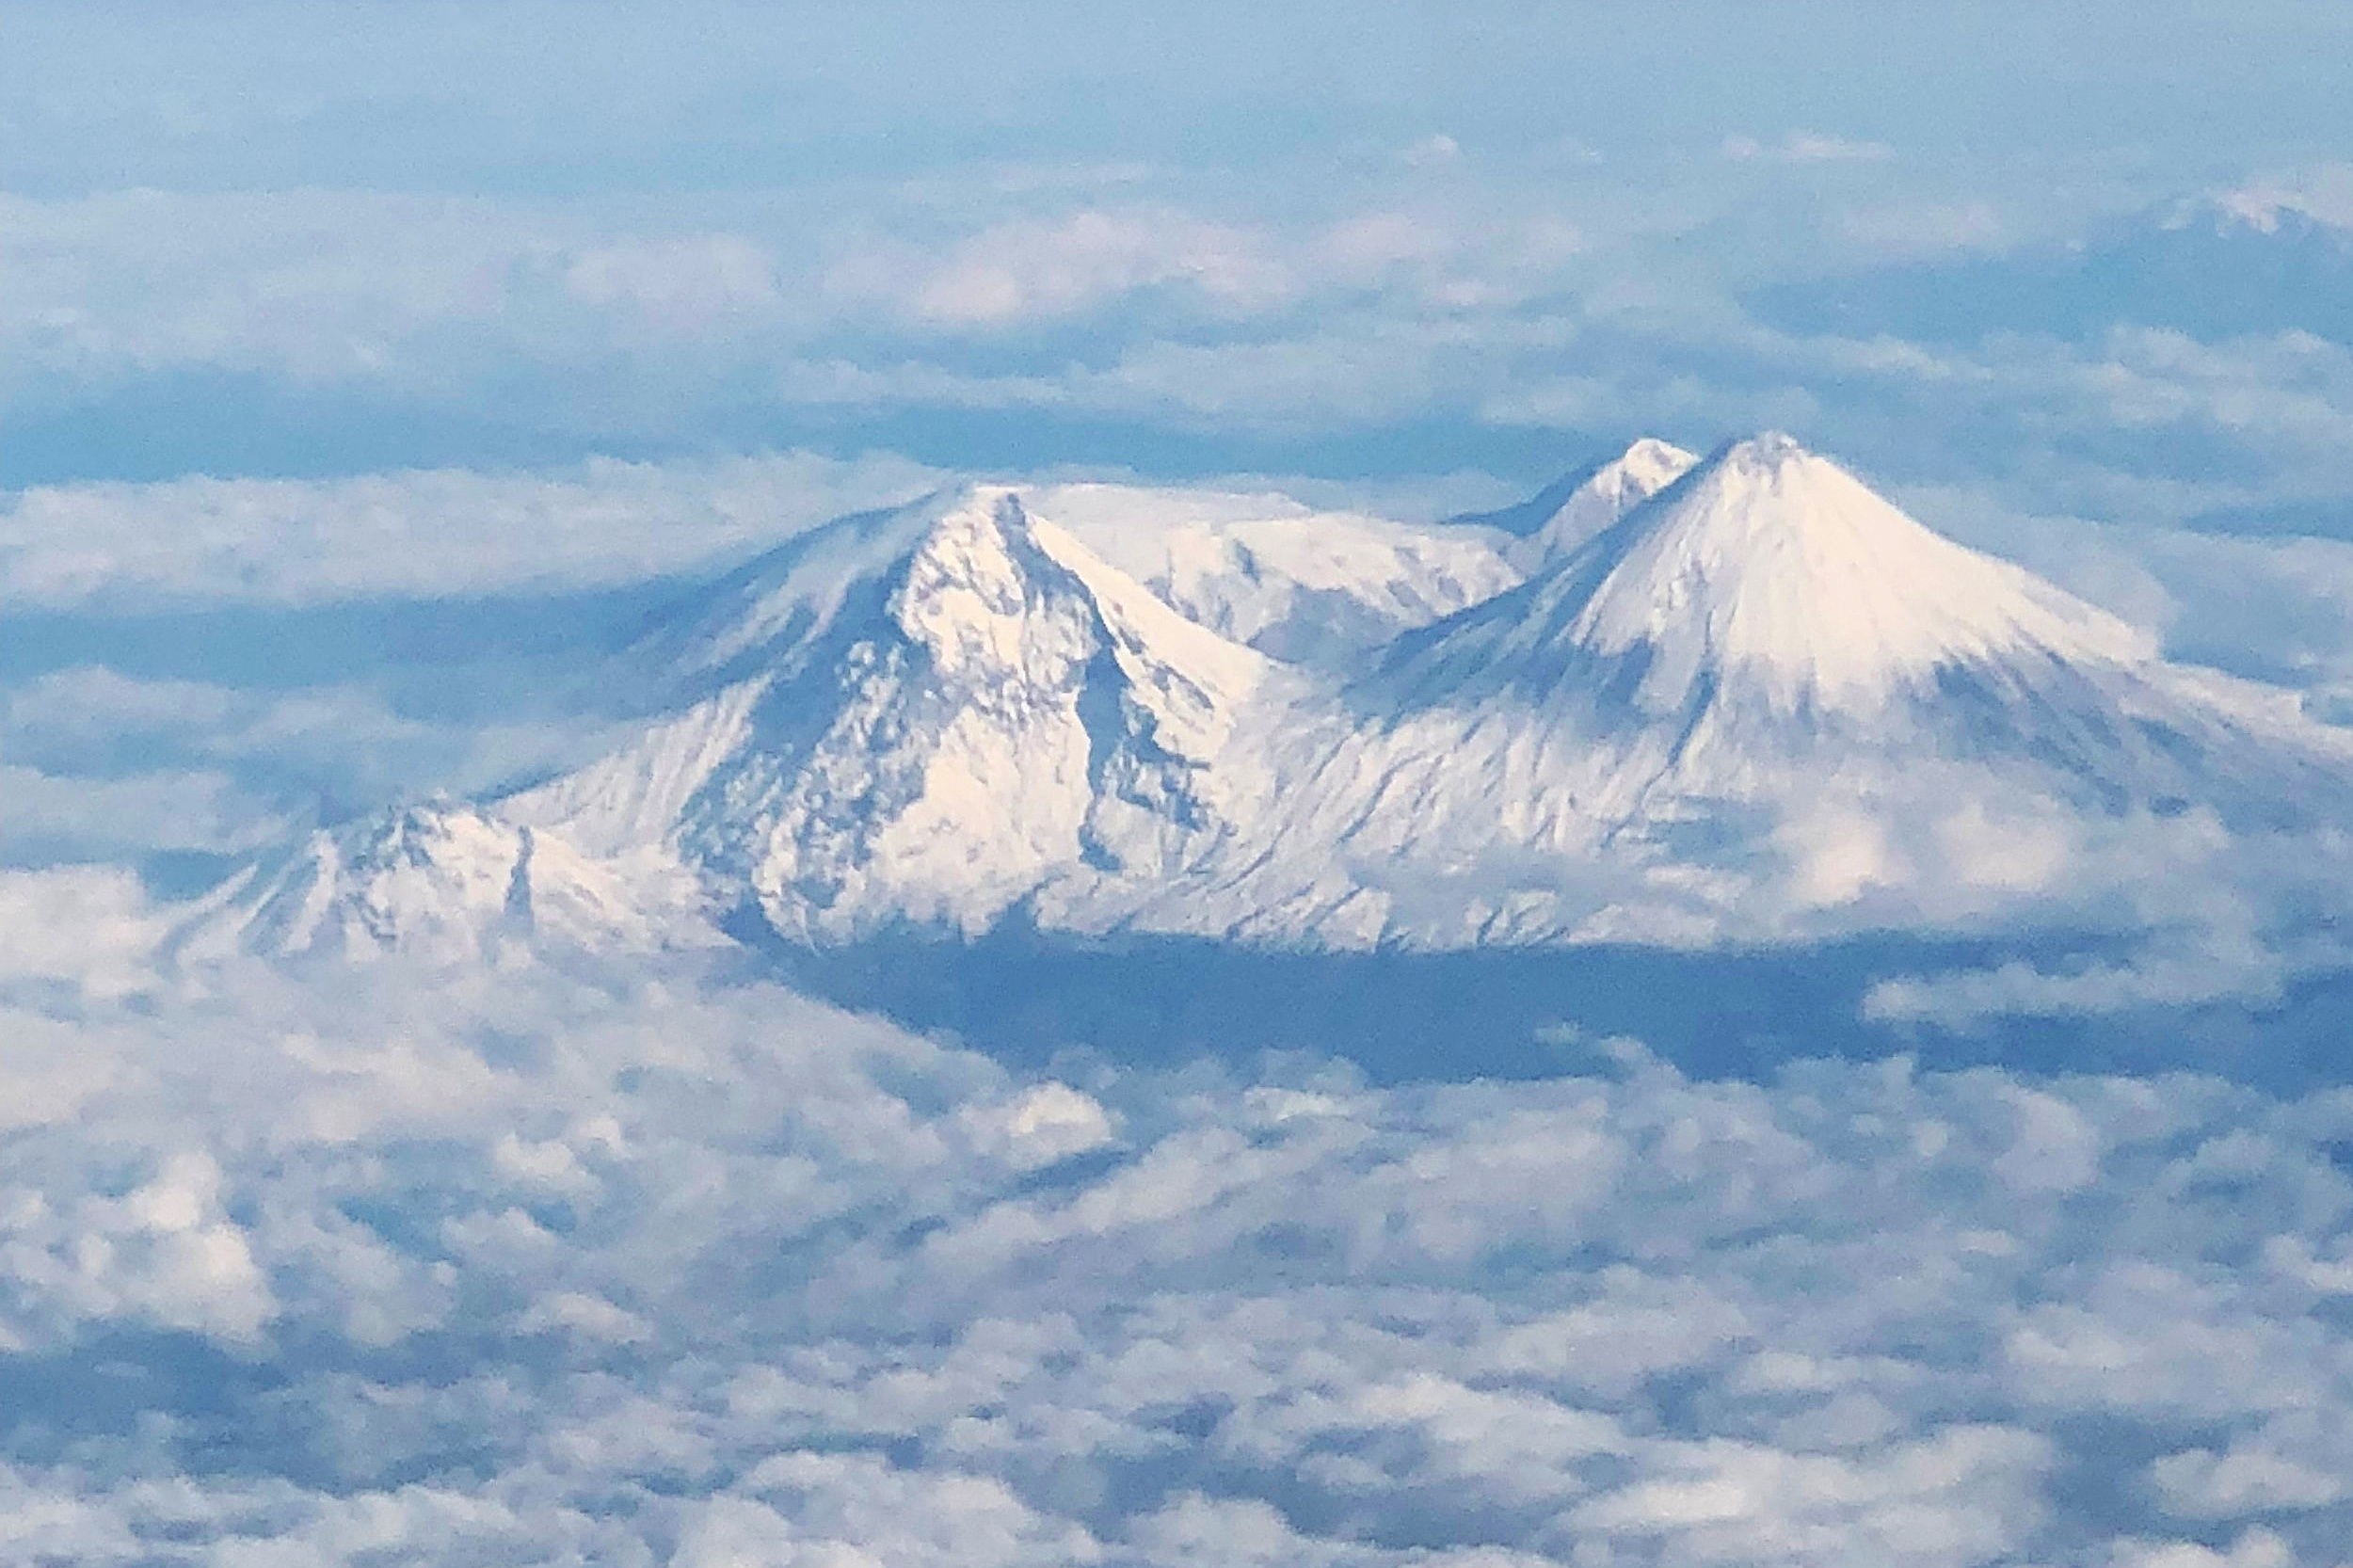 Kamchatka's Volcanos viewed from the Charter flight from Anchorage to Petro. These beautiful volcanoes grace the skyline throughout our trip down the river.